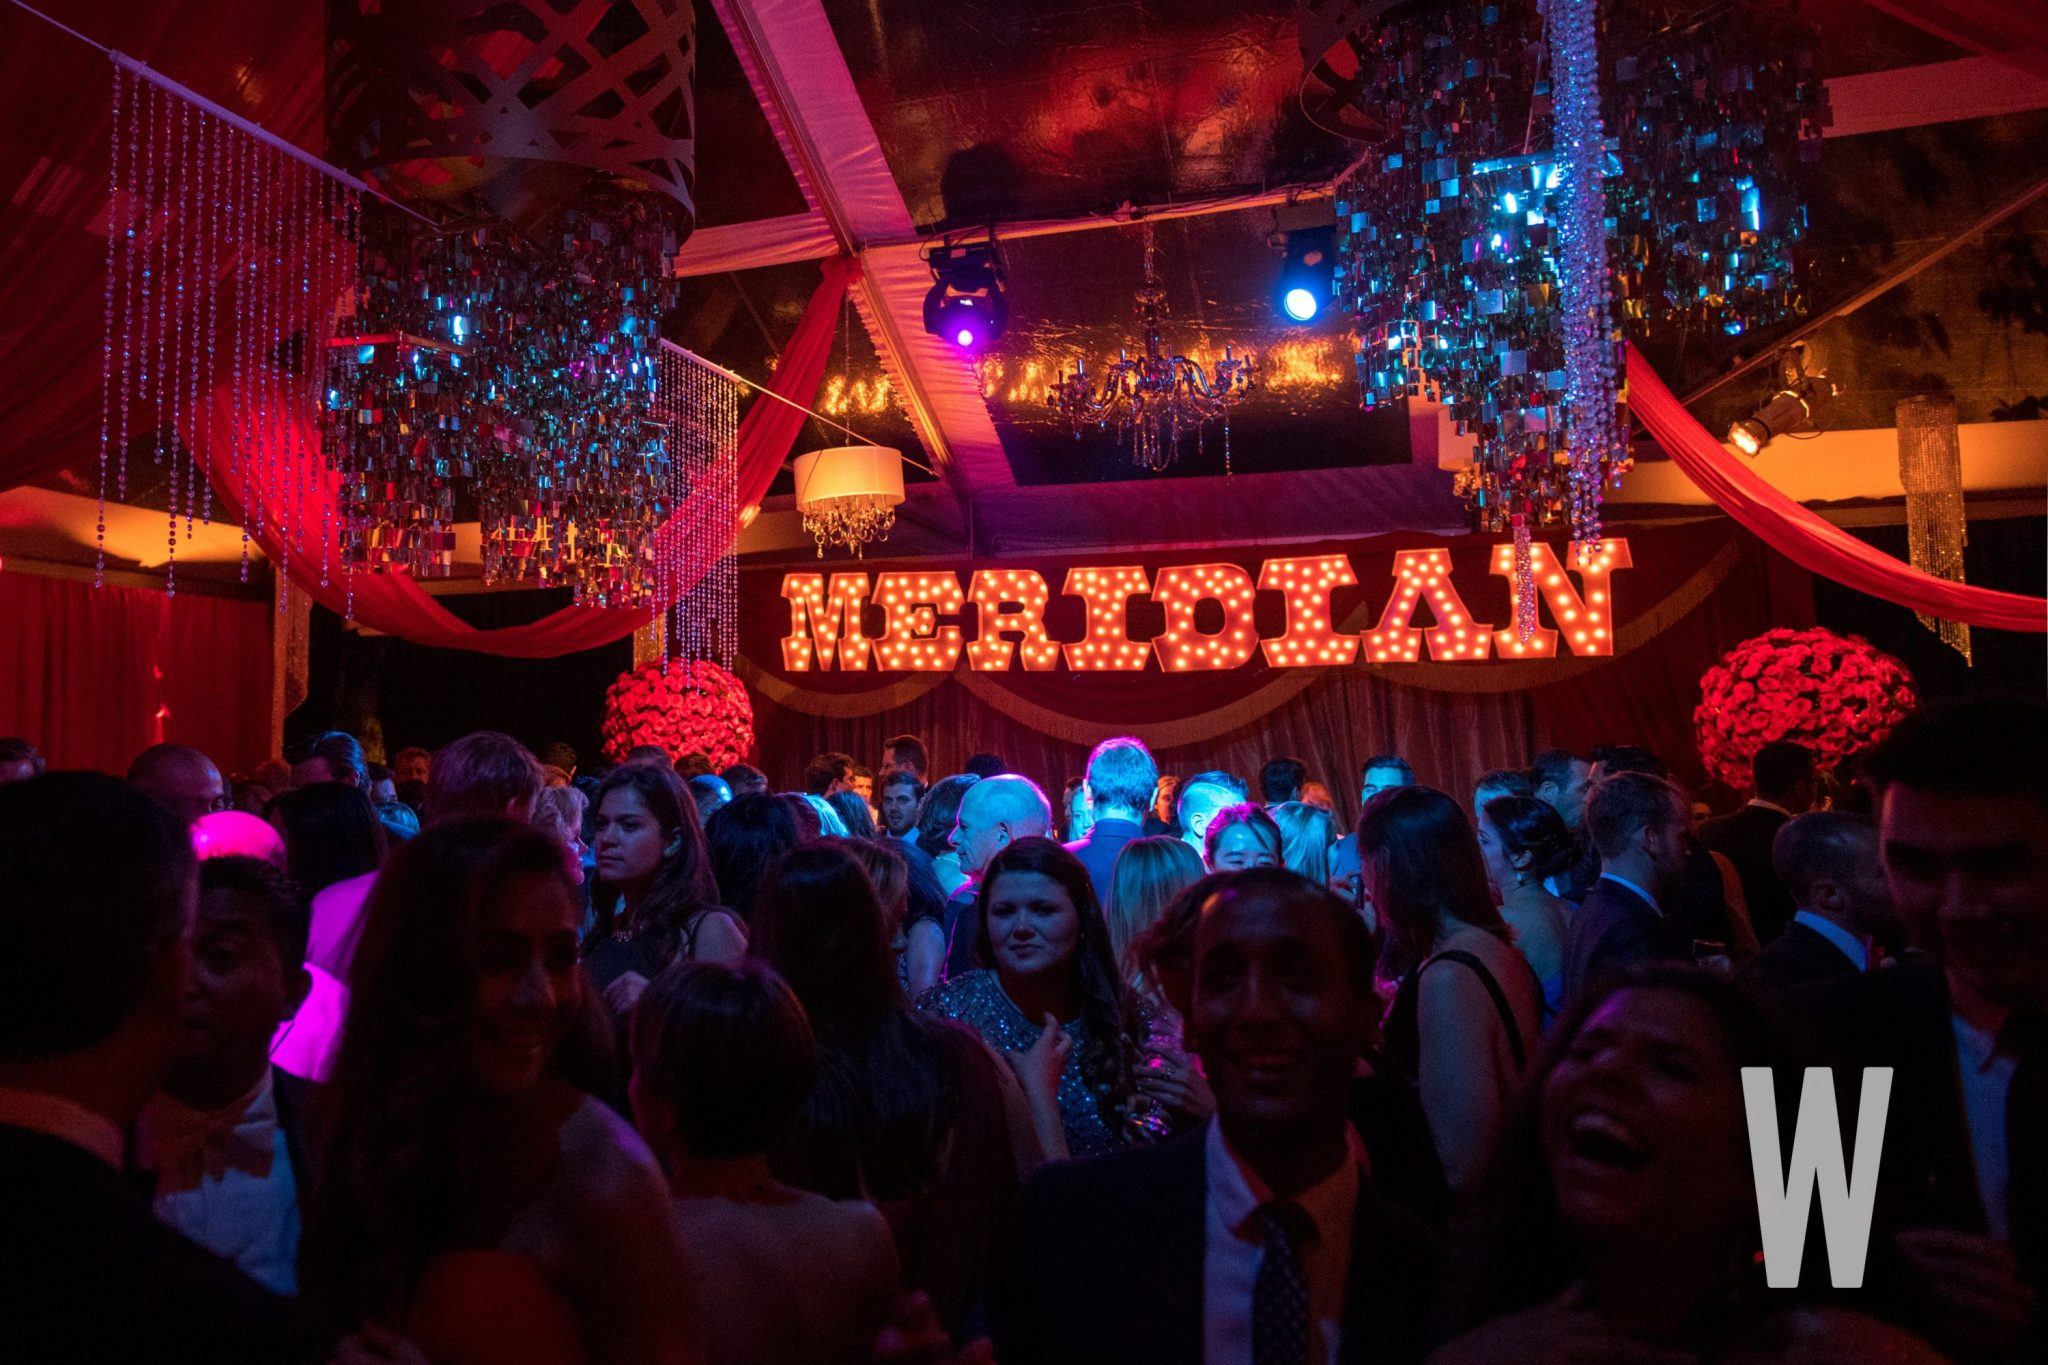 48th Annual Meridian Ball